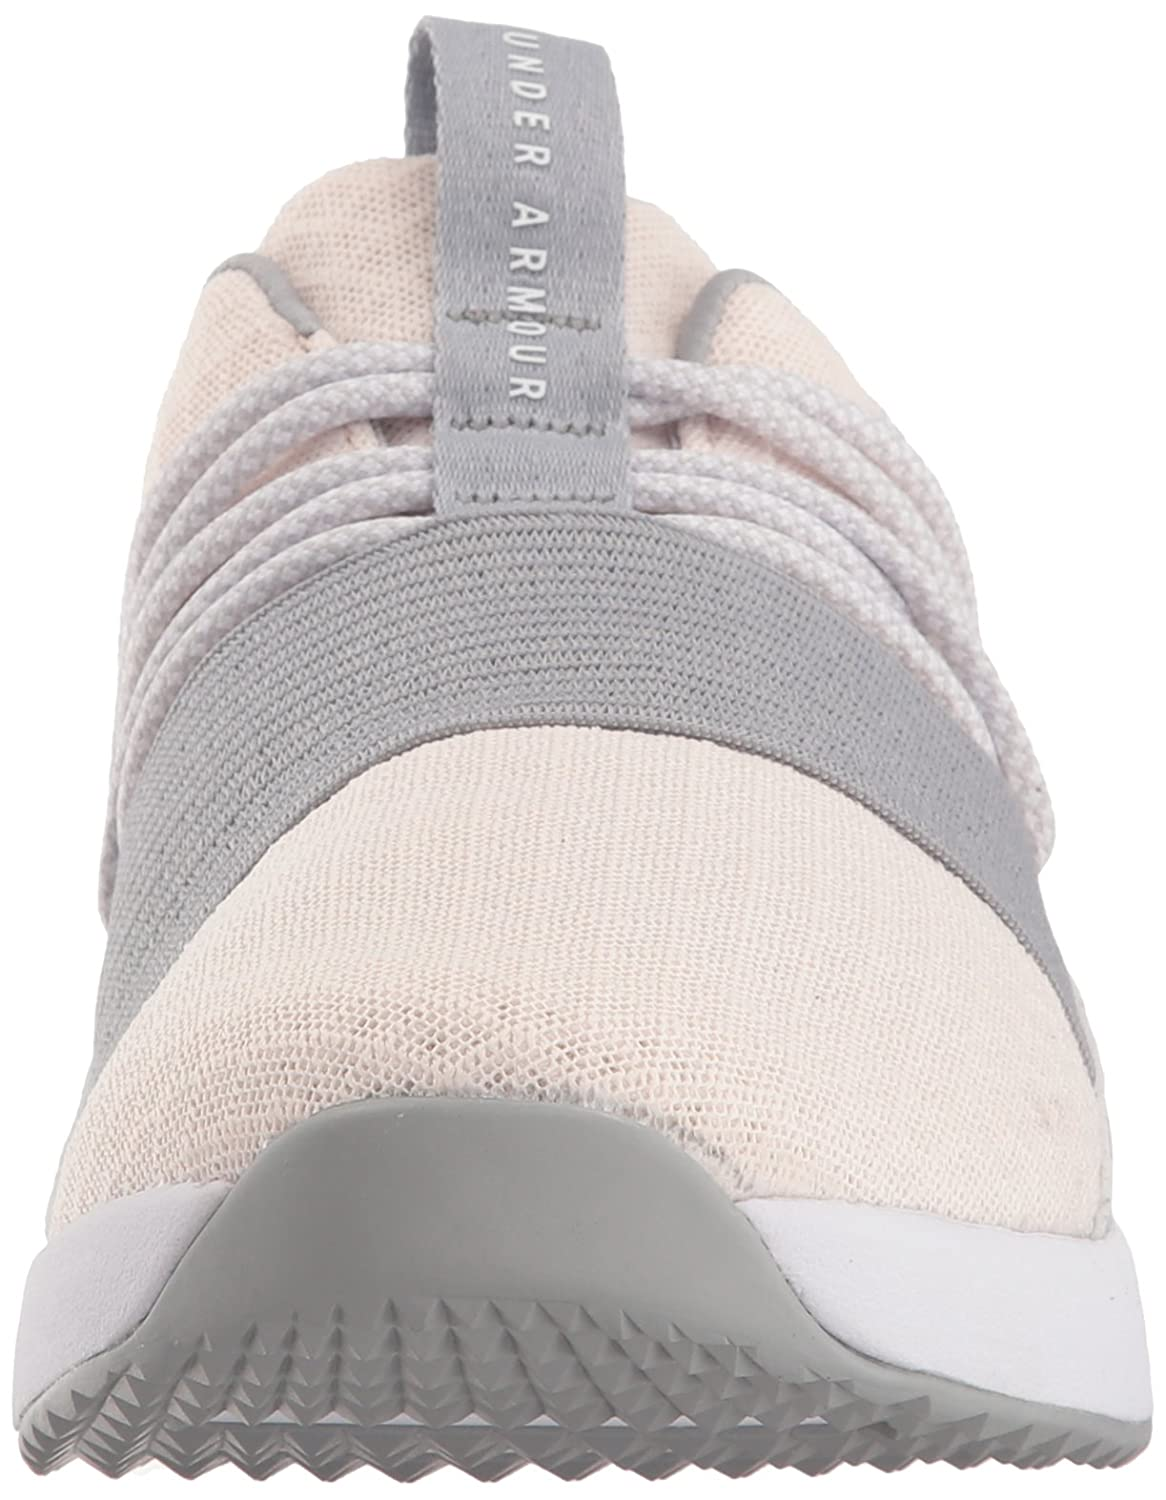 Under Armour B071S8CTY2 Women's Breathe Lace Sneaker B071S8CTY2 Armour 6.5 M US|French Gray (601)/Overcast Gray 4d3eff